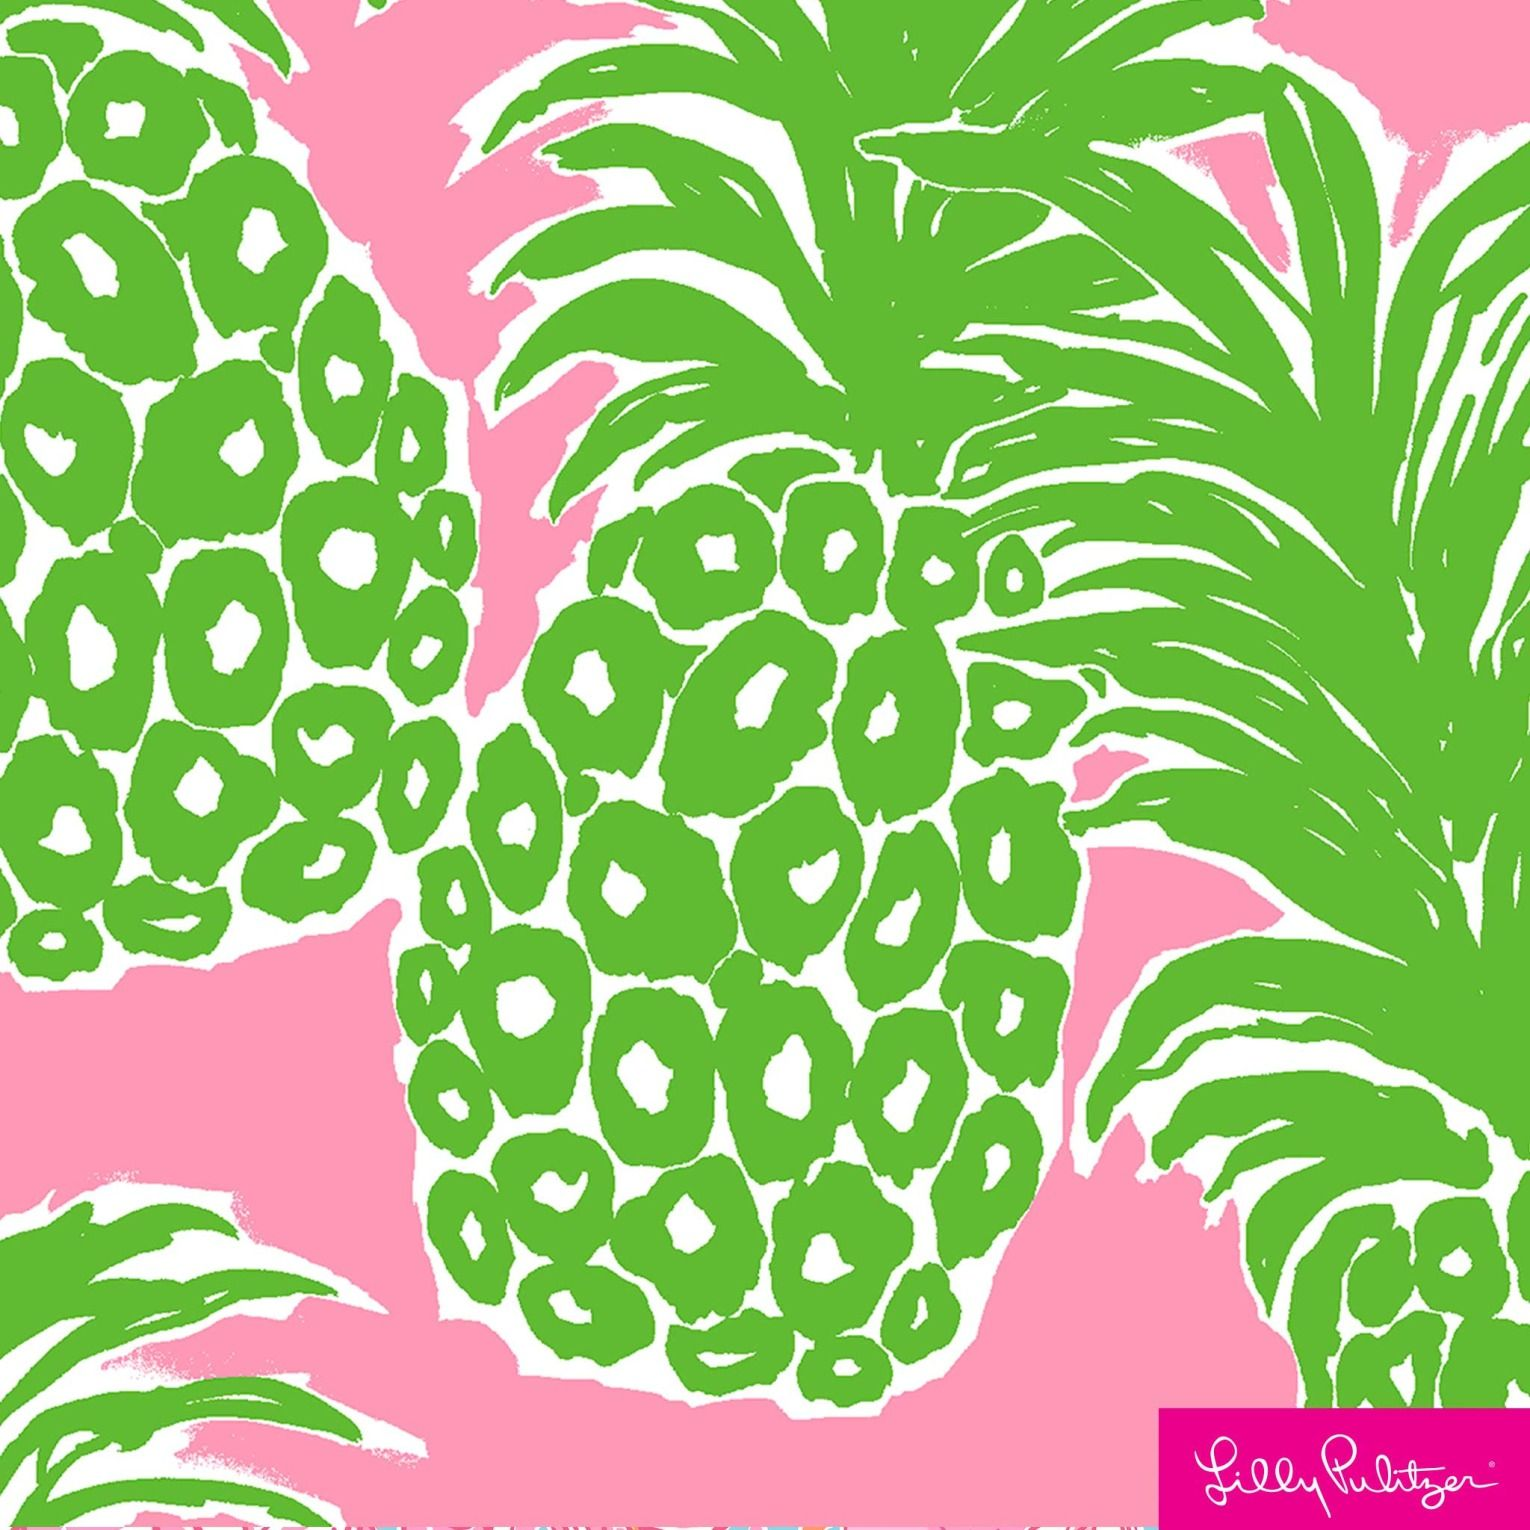 lilly pulitzer flamenco printed lilly pulitzer fabric lilly pulitzer patterns lilly. Black Bedroom Furniture Sets. Home Design Ideas